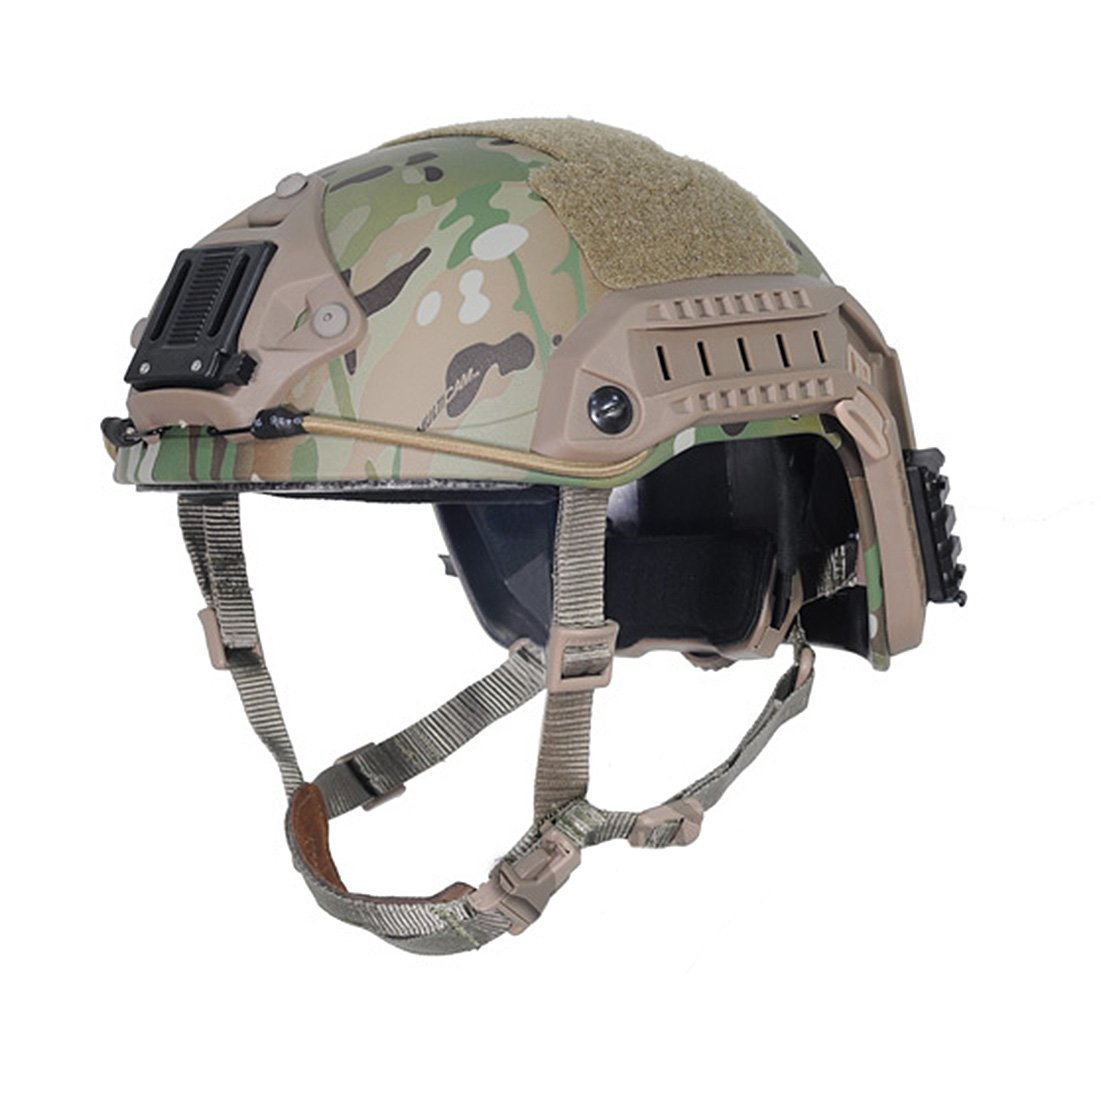 H World Shopping Tactical Adjustable ABS Maritime Helmet Multicam MC , Two Sizes (M / L, L / XL) For Military Airsoft Paintball Hunting Shooting (L/XL) by H World Shopping